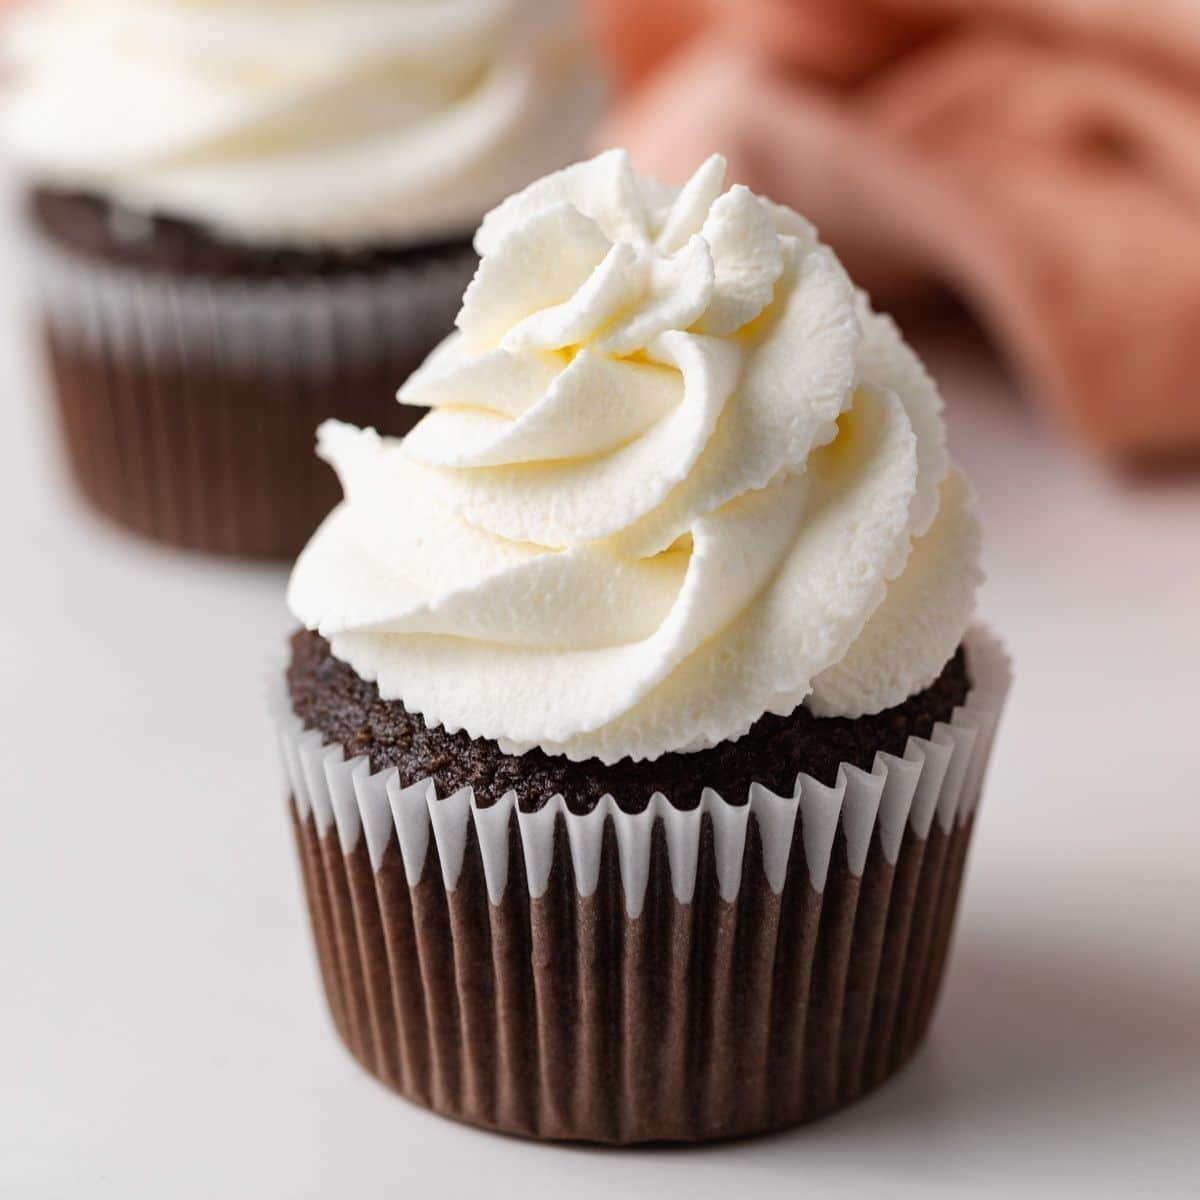 whipped cream swirled on top of chocolate cupcakes